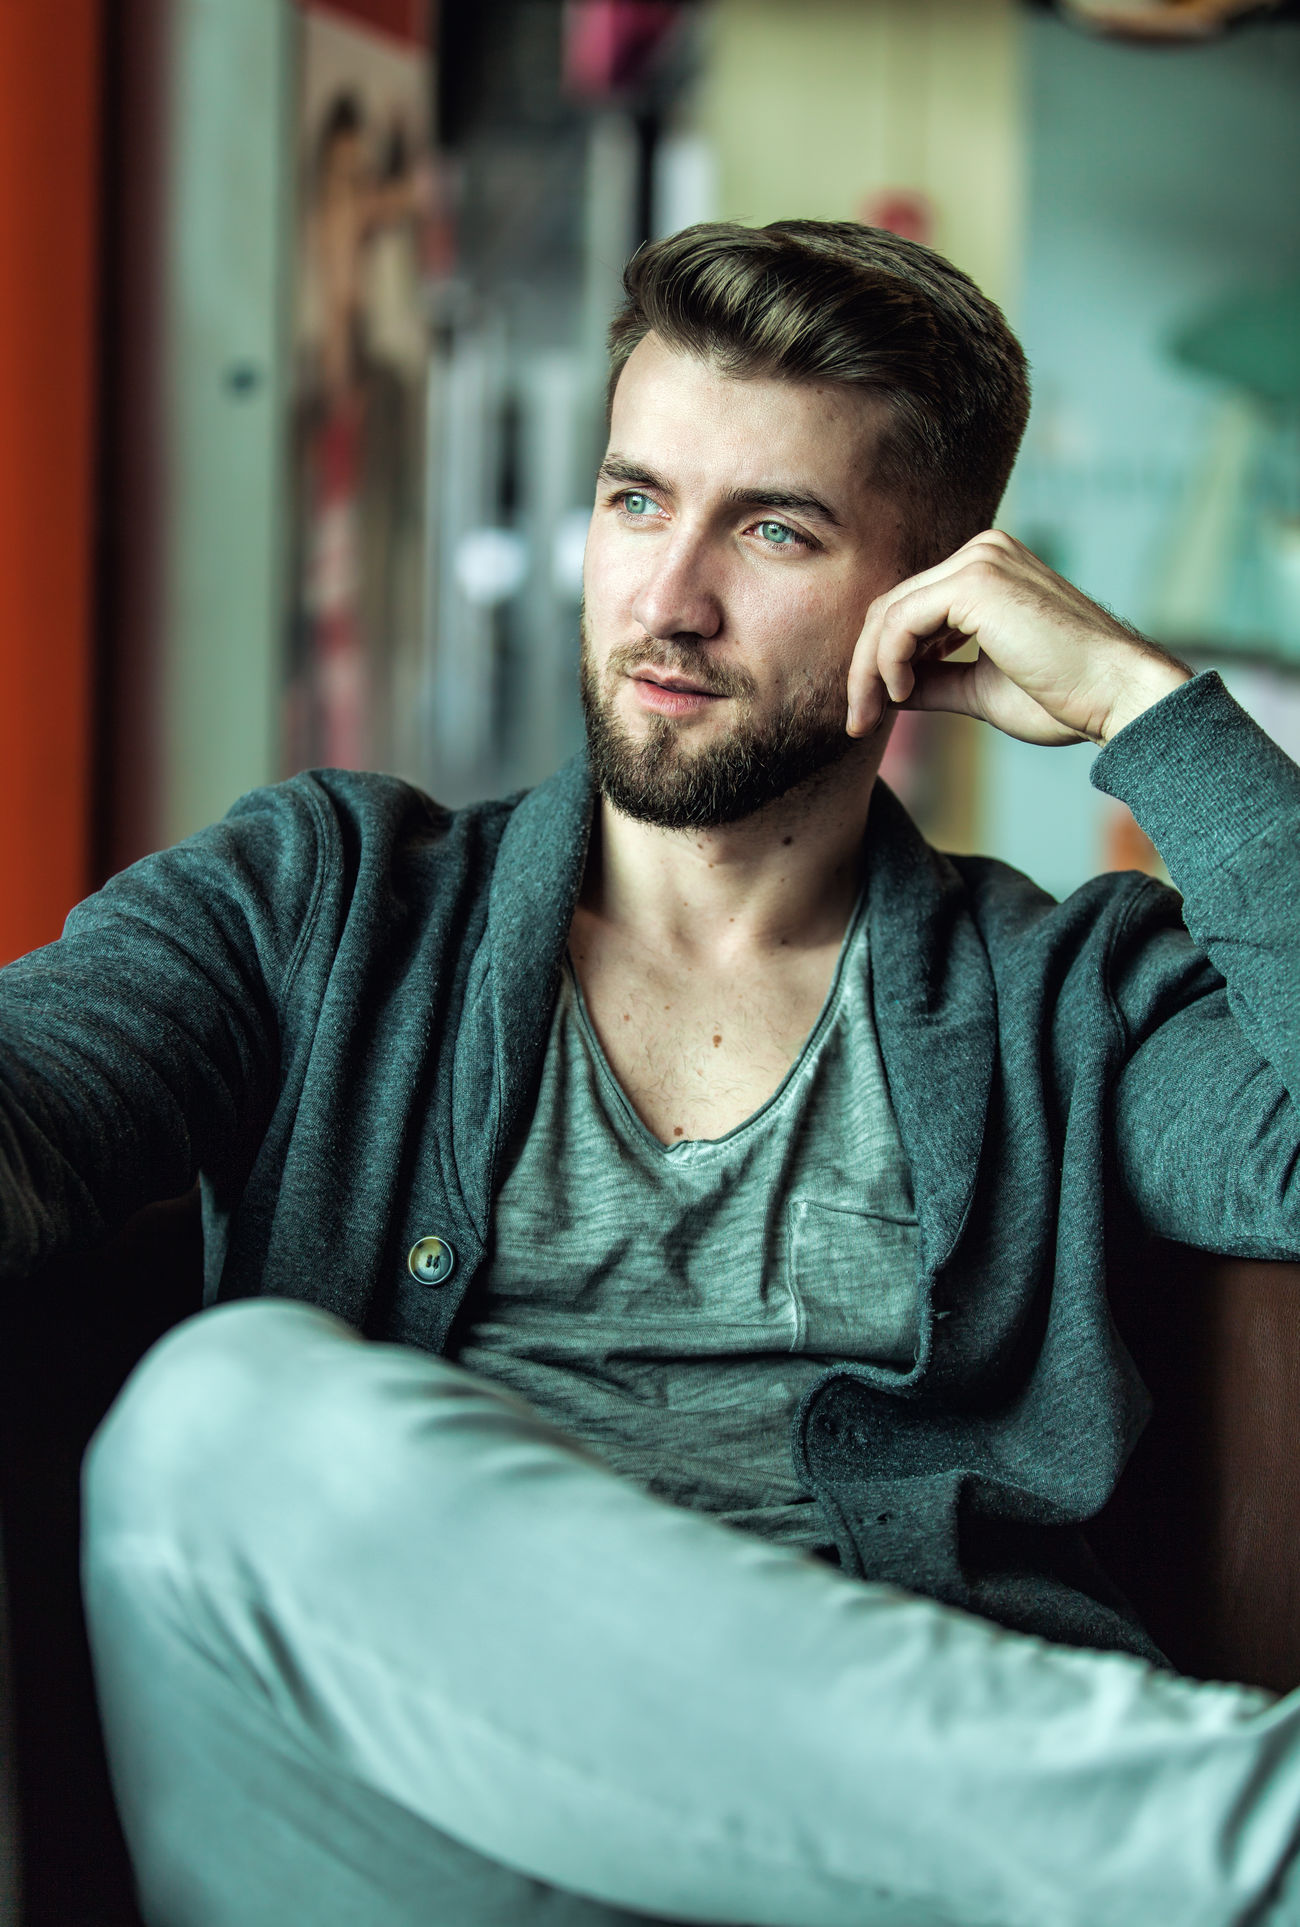 Attractive man with a beard is sitting in a coffee shop Background Beard Bearded City Close-up Fashion Guy Hairstyle Jeans Lean Lifestyles Looking Man Model One Outdoor People Person Portrait Restaurant Sitting Sportive Sweater Thinking Thoughful The Portraitist - 2017 EyeEm Awards